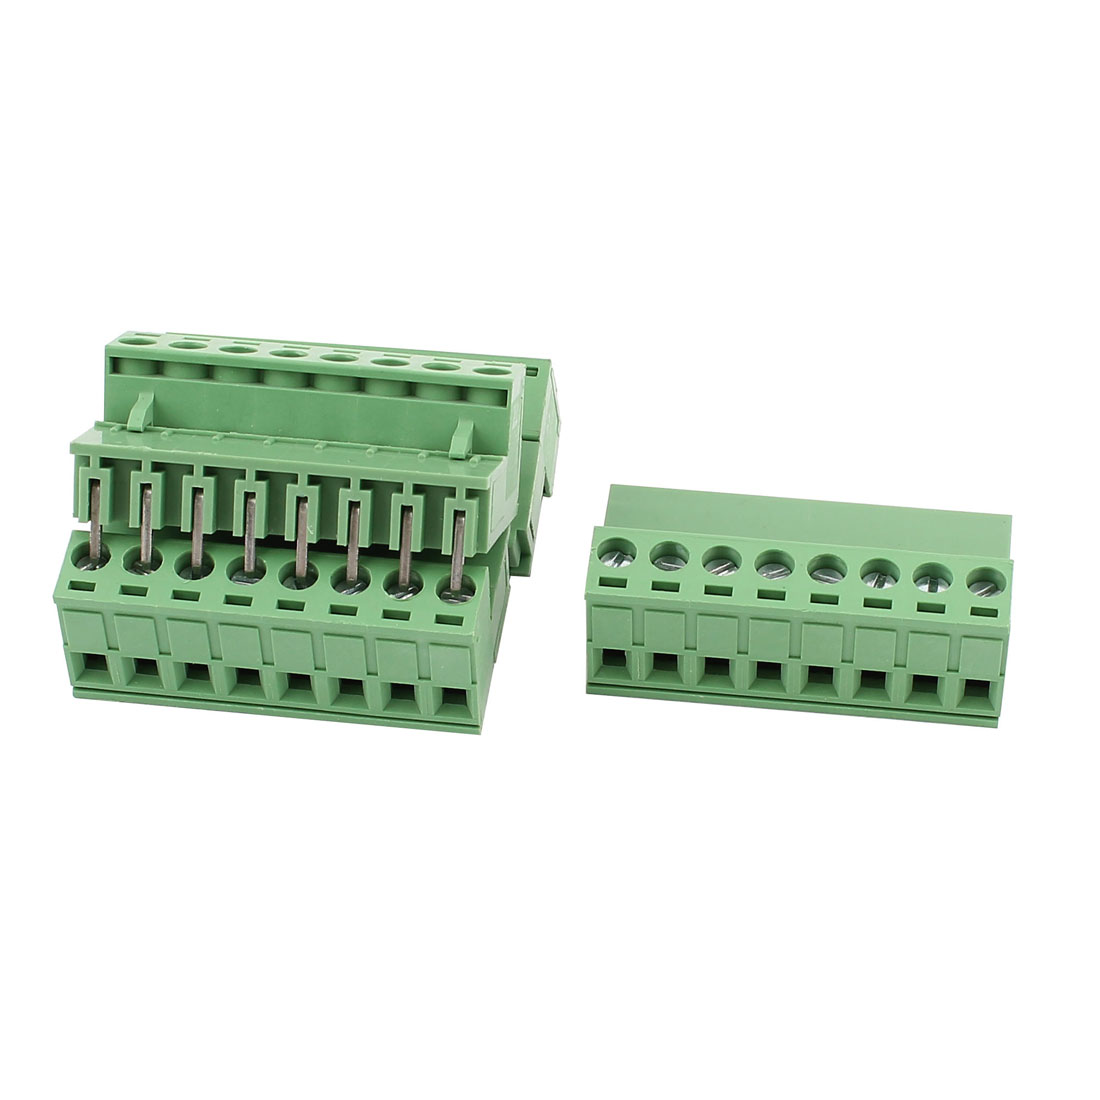 4 Pcs AC 300V 10A 8 Pins PCB Terminal Block Connector 5.08mm Pitch Green